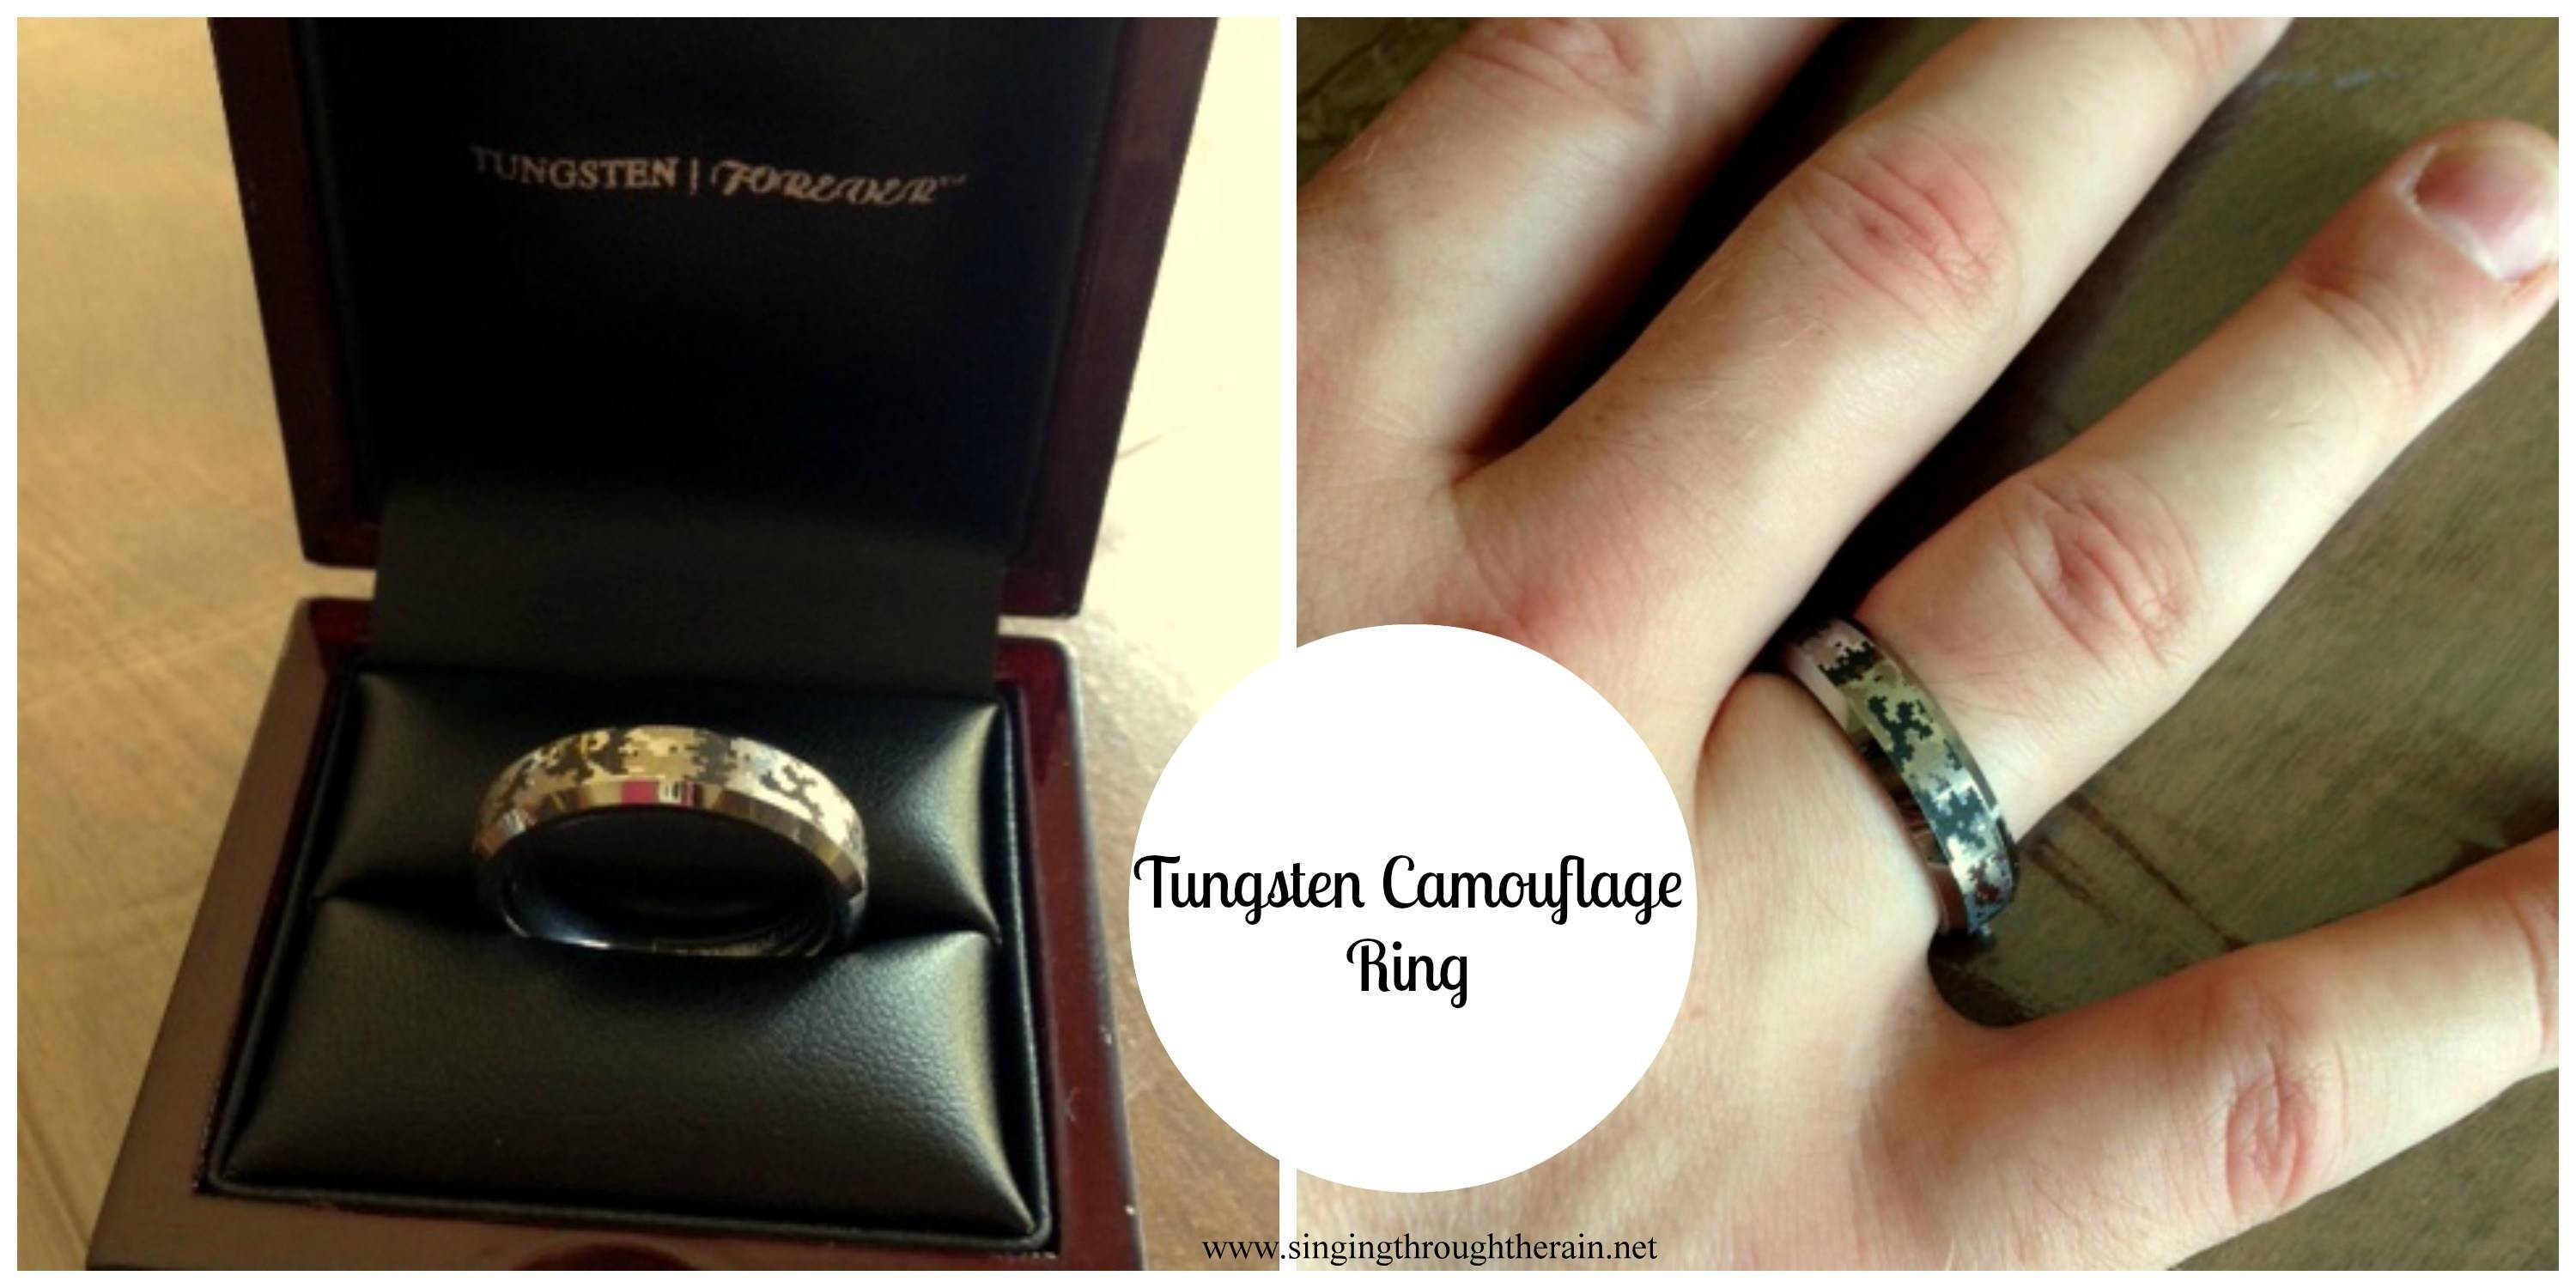 Tungsten Camouflage Ring For Military Men | Singing Through The Rain Regarding Military Wedding Rings (View 13 of 15)